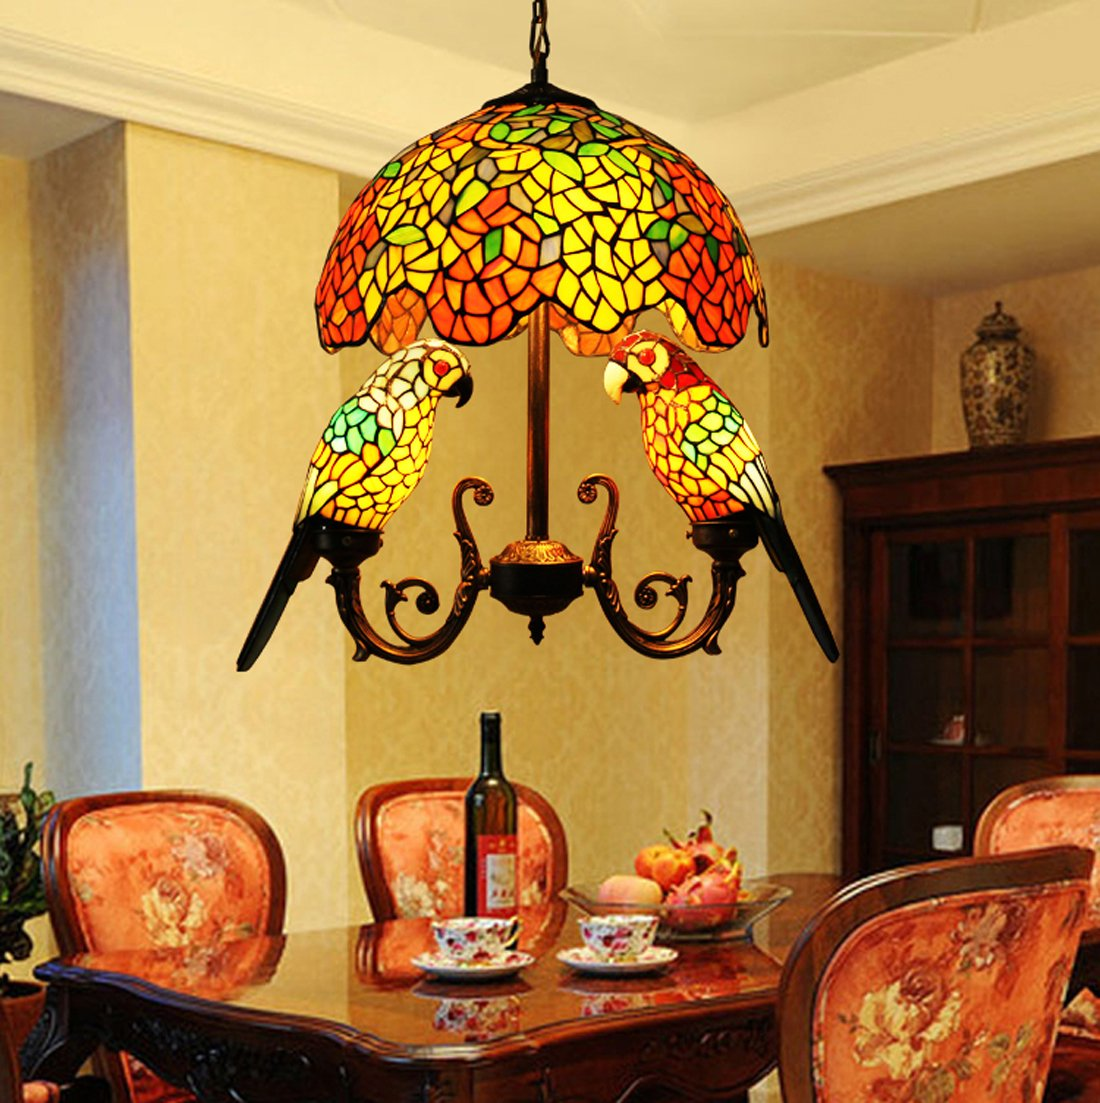 Makenier Vintage Tiffany Style Stained Glass 16 Inch Wisteria + Double  Parrots Pendant Hanging Lamp     Amazon.com